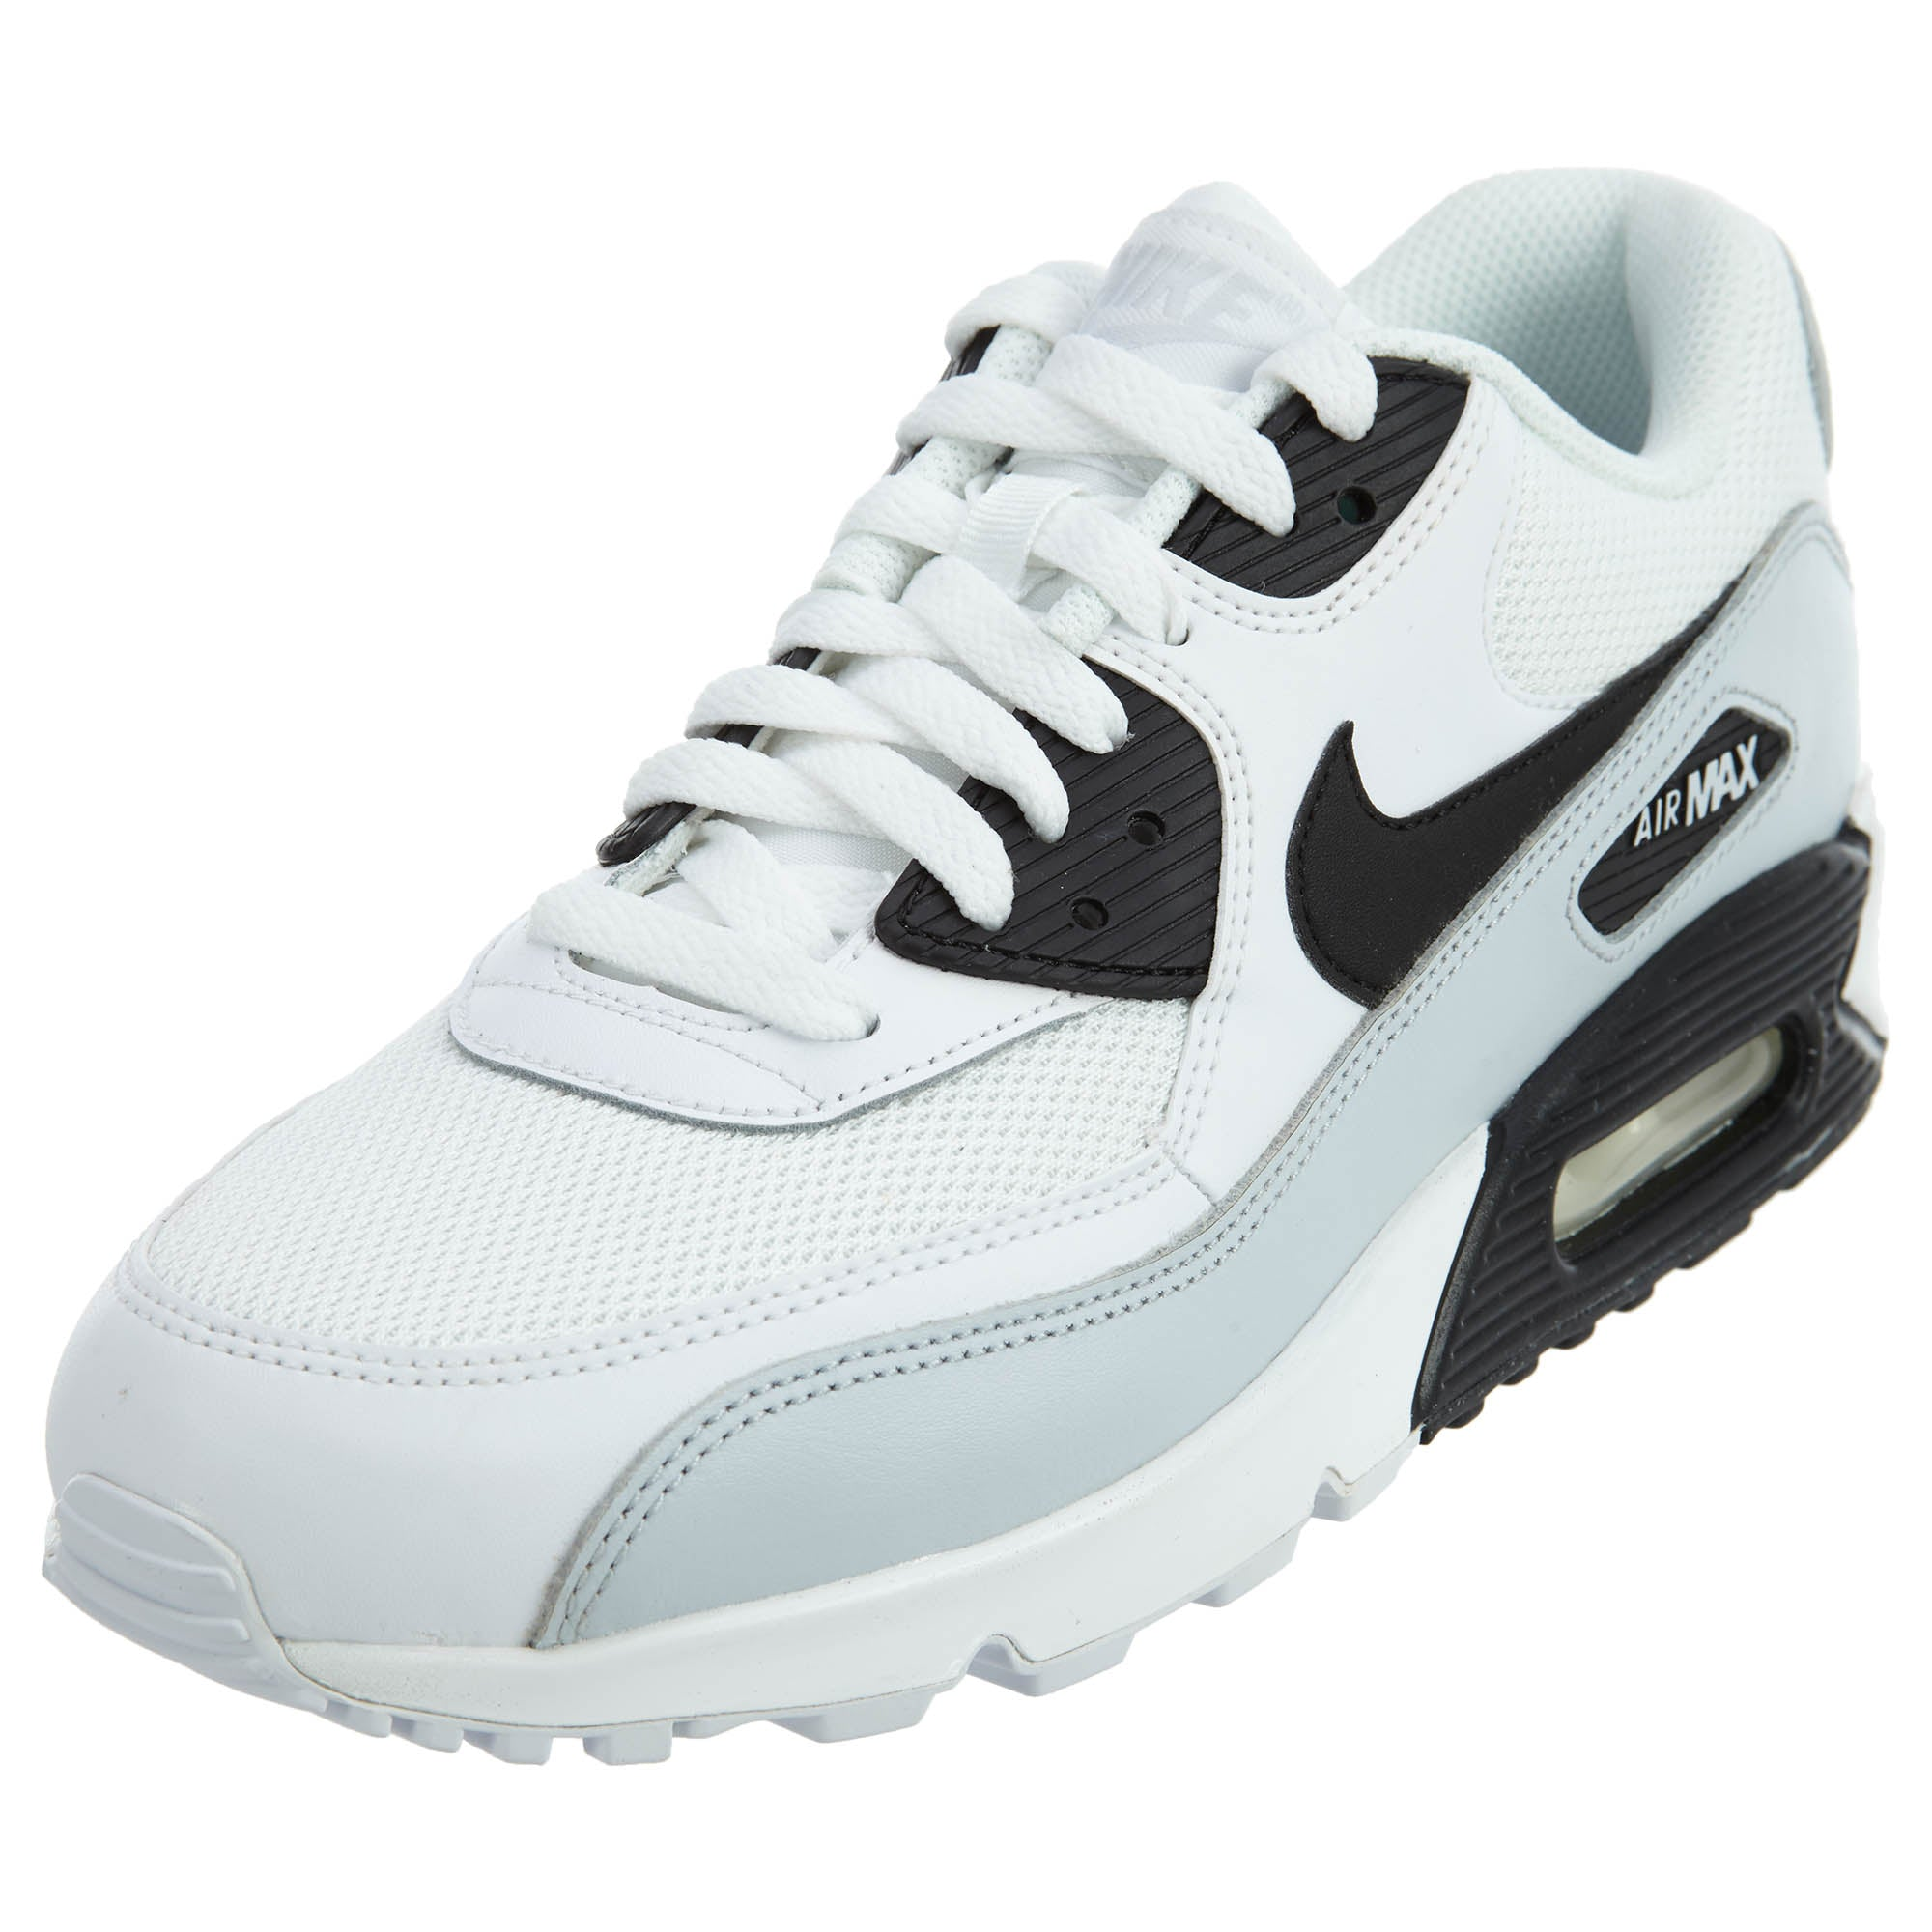 36befa7da3 Nike Air Max 90 Essential Mens Style : 537384